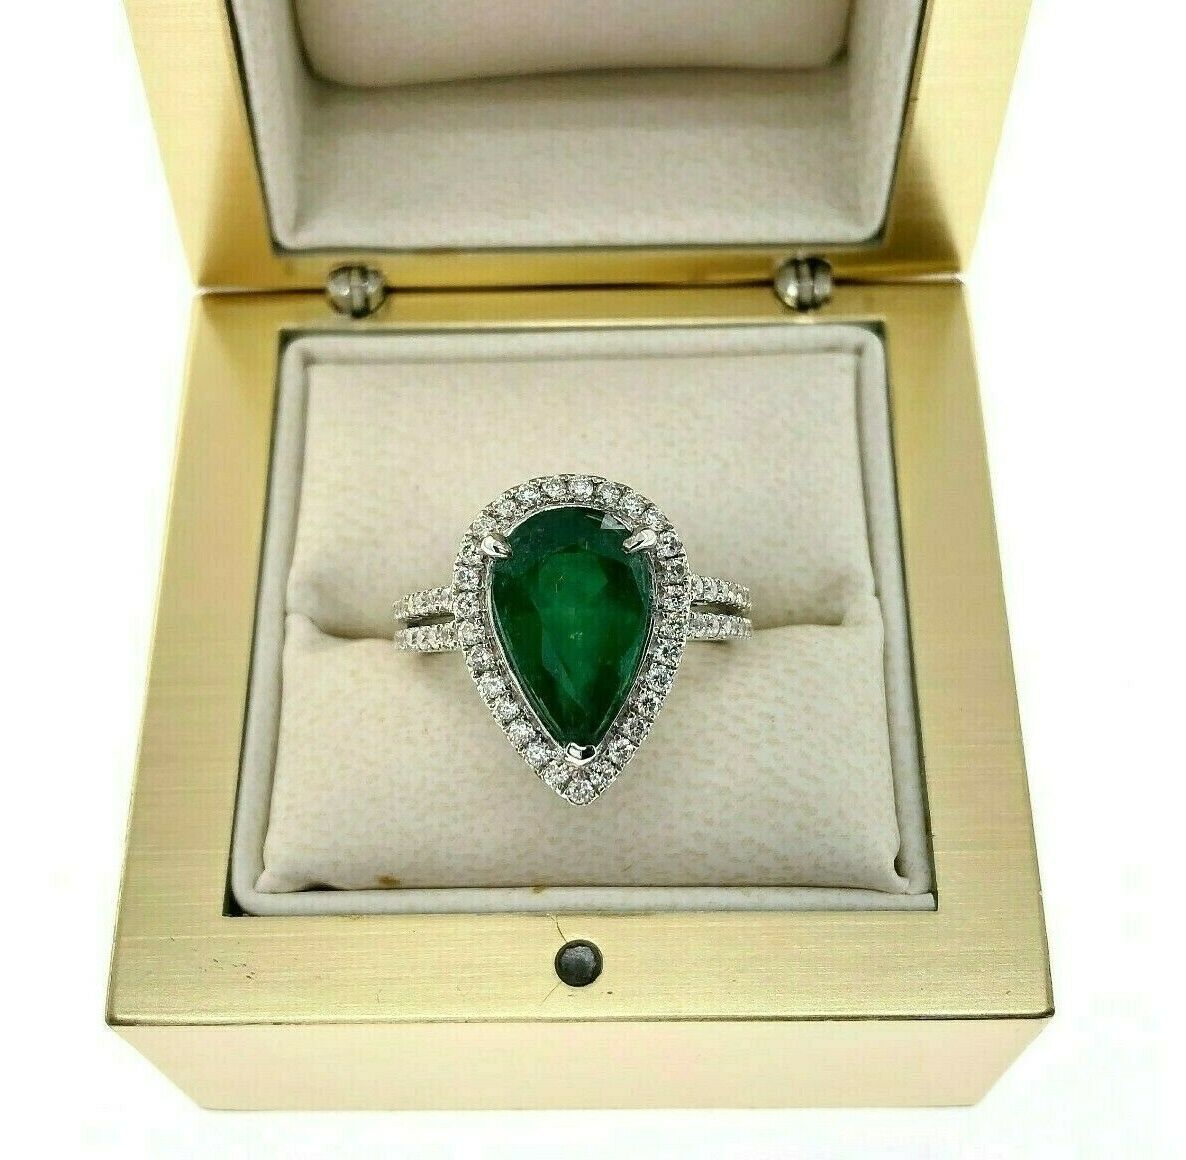 3.82 Carats t.w. Diamond and Emerald Halo Ring 18K Gold Emerald is 3.25 Carats